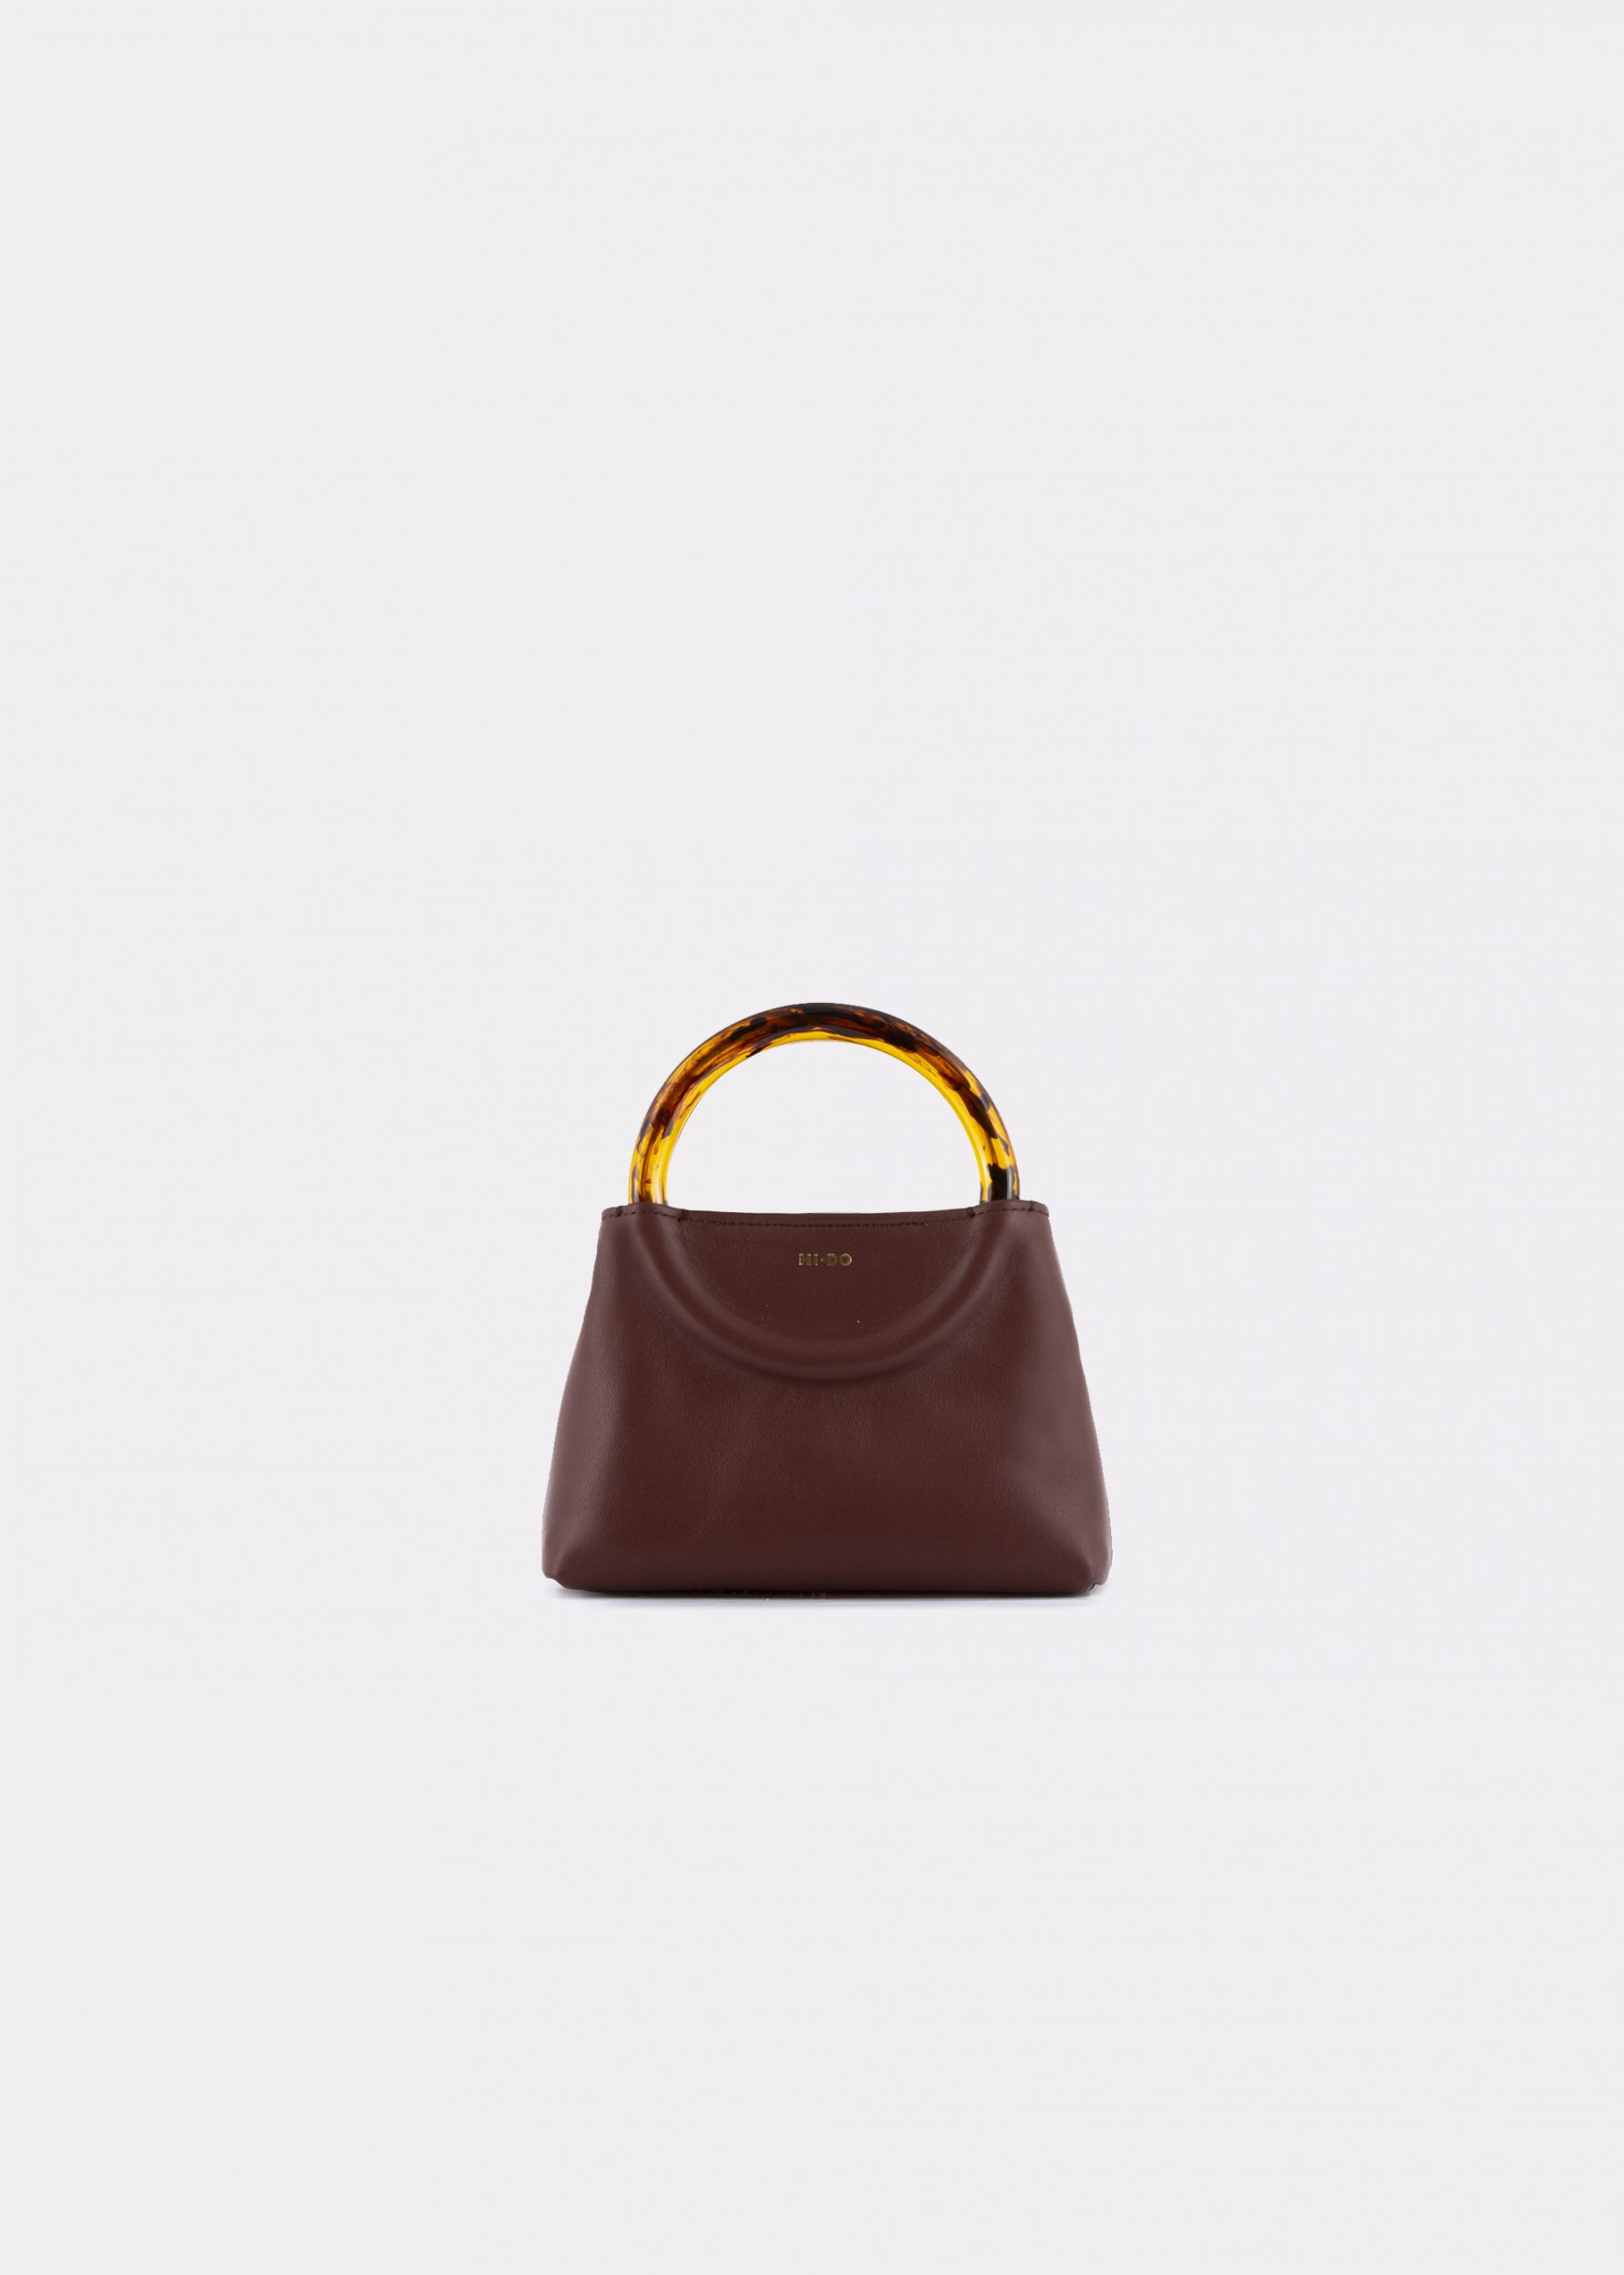 NIDO Bolla_Micro bag chestnut_front view